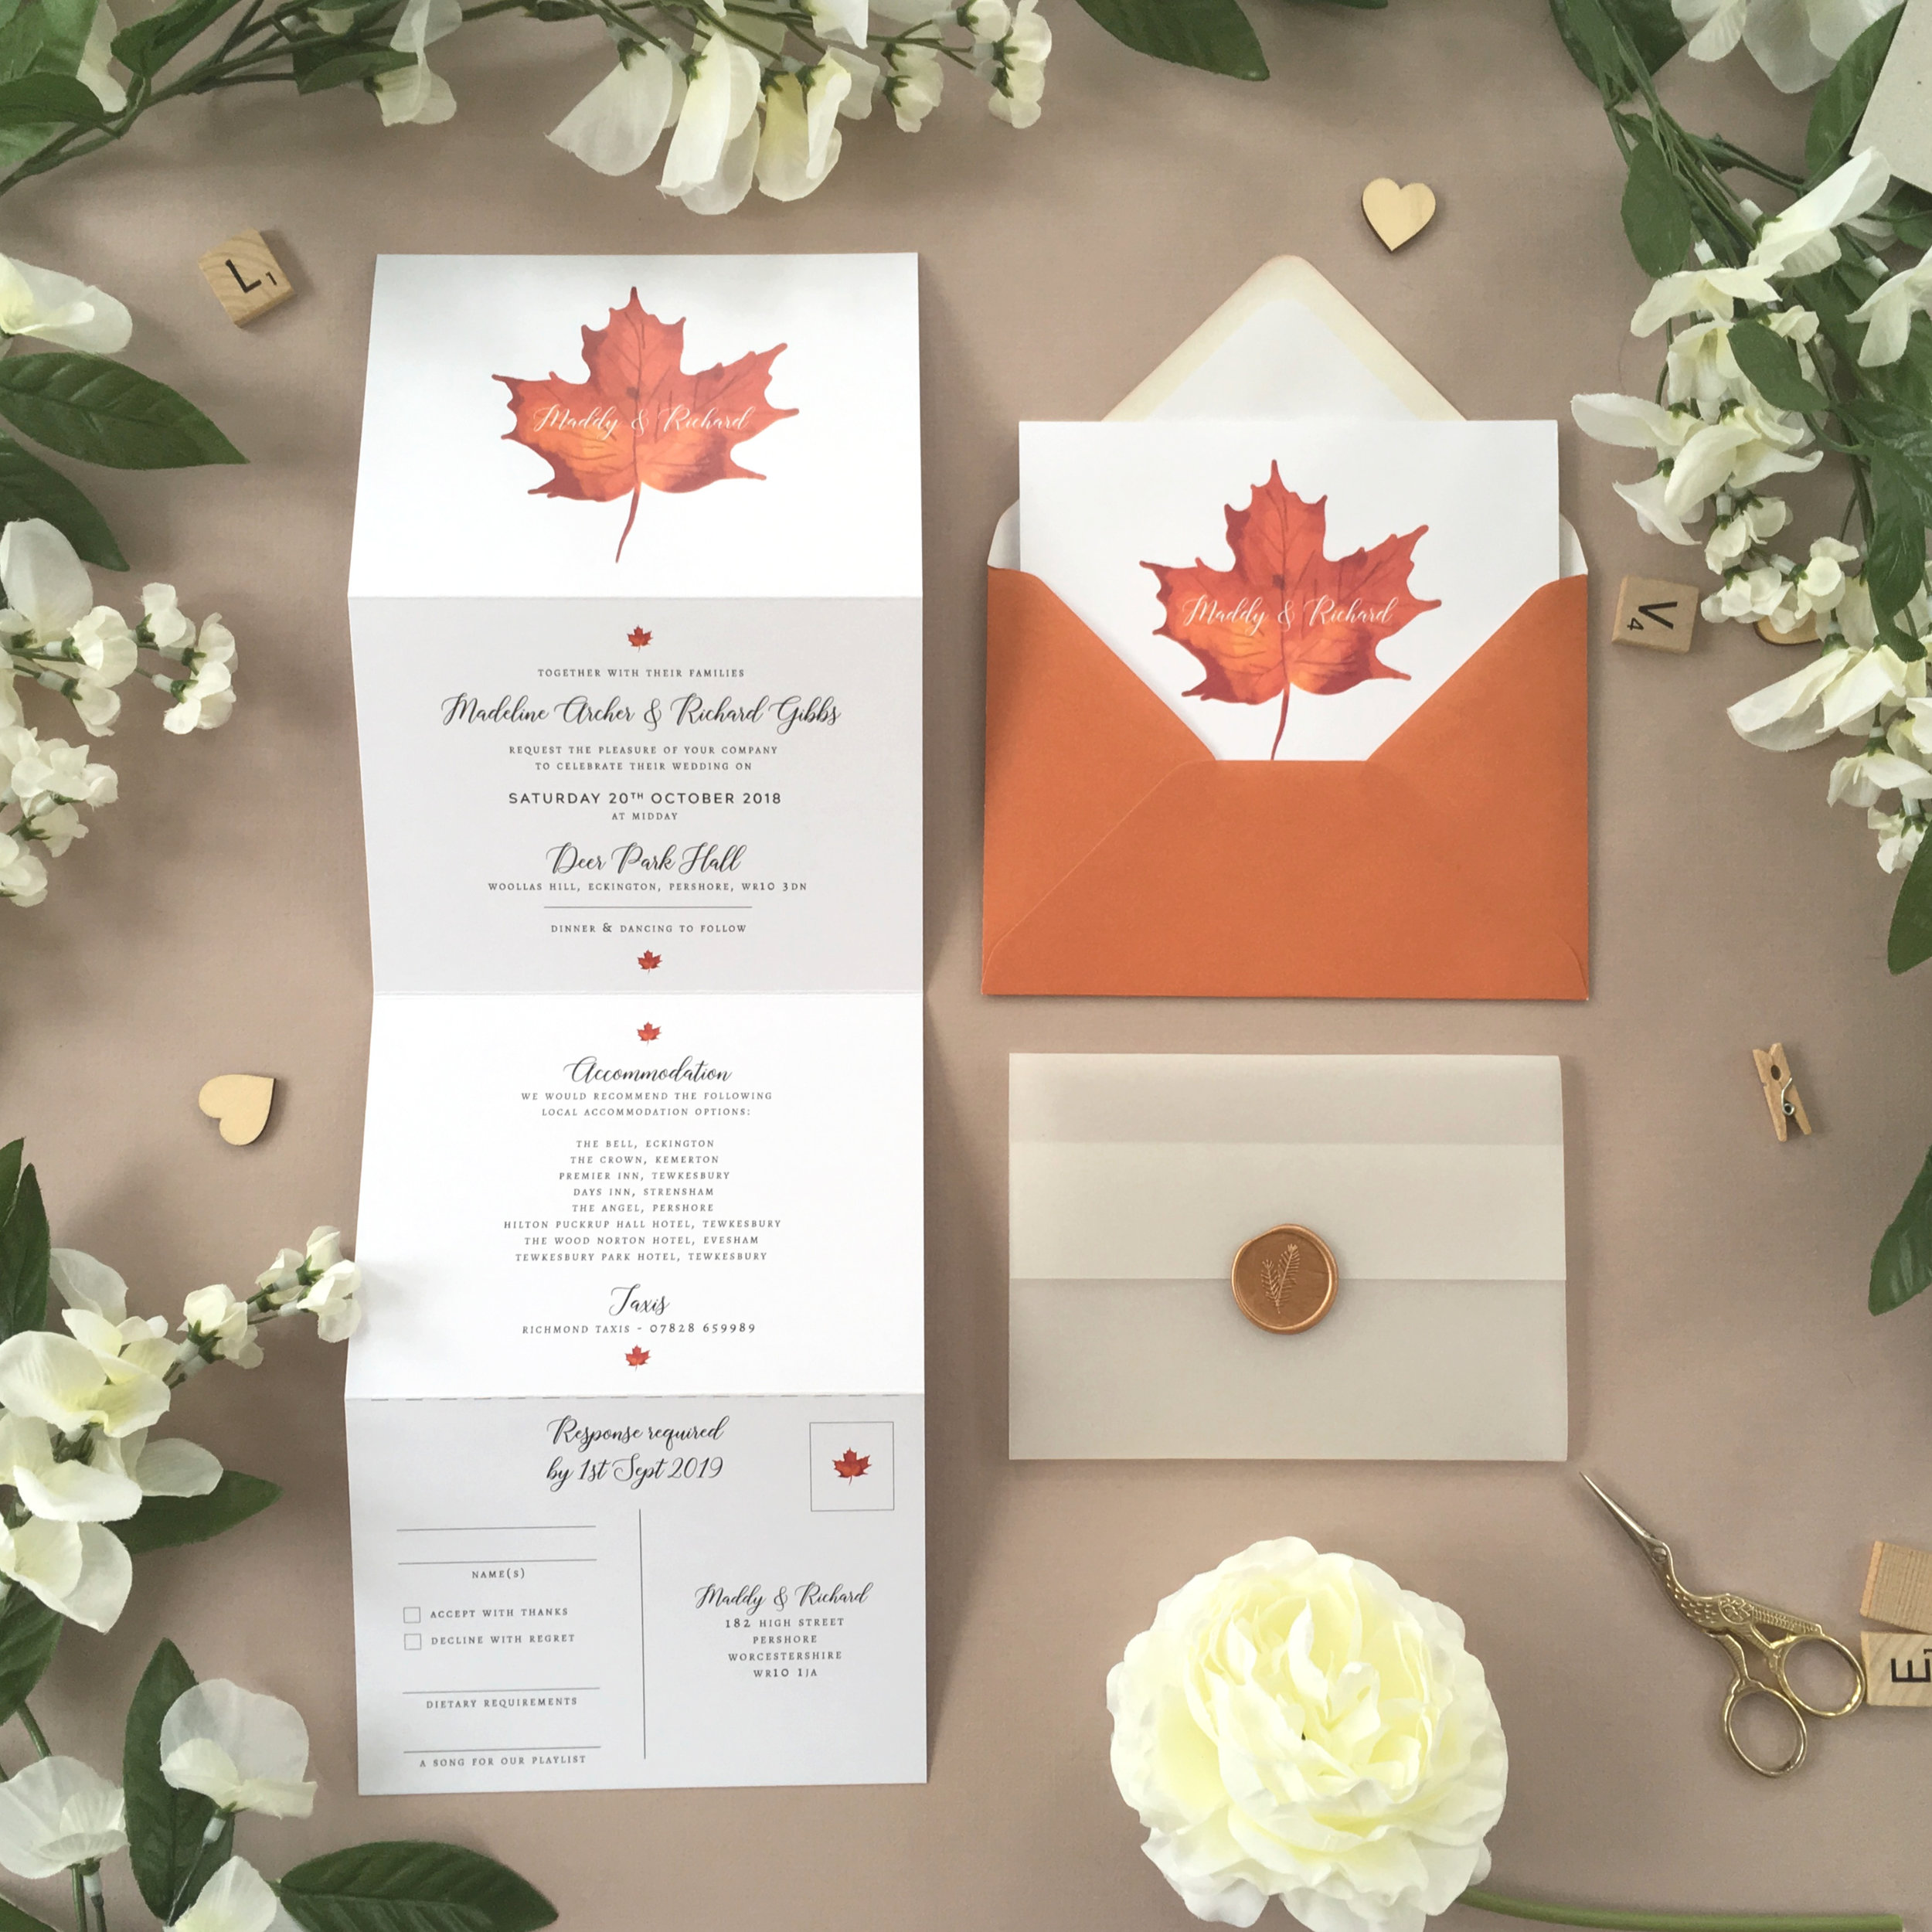 Burnt Oak - Our Burnt Oak collection is a vibrant autumnal design, using a maple leaf design throughout this concertina wedding invitation.Our concertina invitations are a great all-in-one solution, with a detachable RSVP at the bottom of the invitation - all guests need to do is fill in their details, put a stamp in the corner and post!Concertina invitations can be provided on an as-is basis, or can be provided bound with a vellum jacket and timeless wax seal, or tied with ribbon or twine for a lovely hand-finished approach.- Concertina Invitation - from £1.95- Ribbon or Twine - £0.40- Vellum Jacket - £0.40- Wax Seal - £0.85 (Custom engraving also available)White envelope provided as standard with coloured upgrade available.